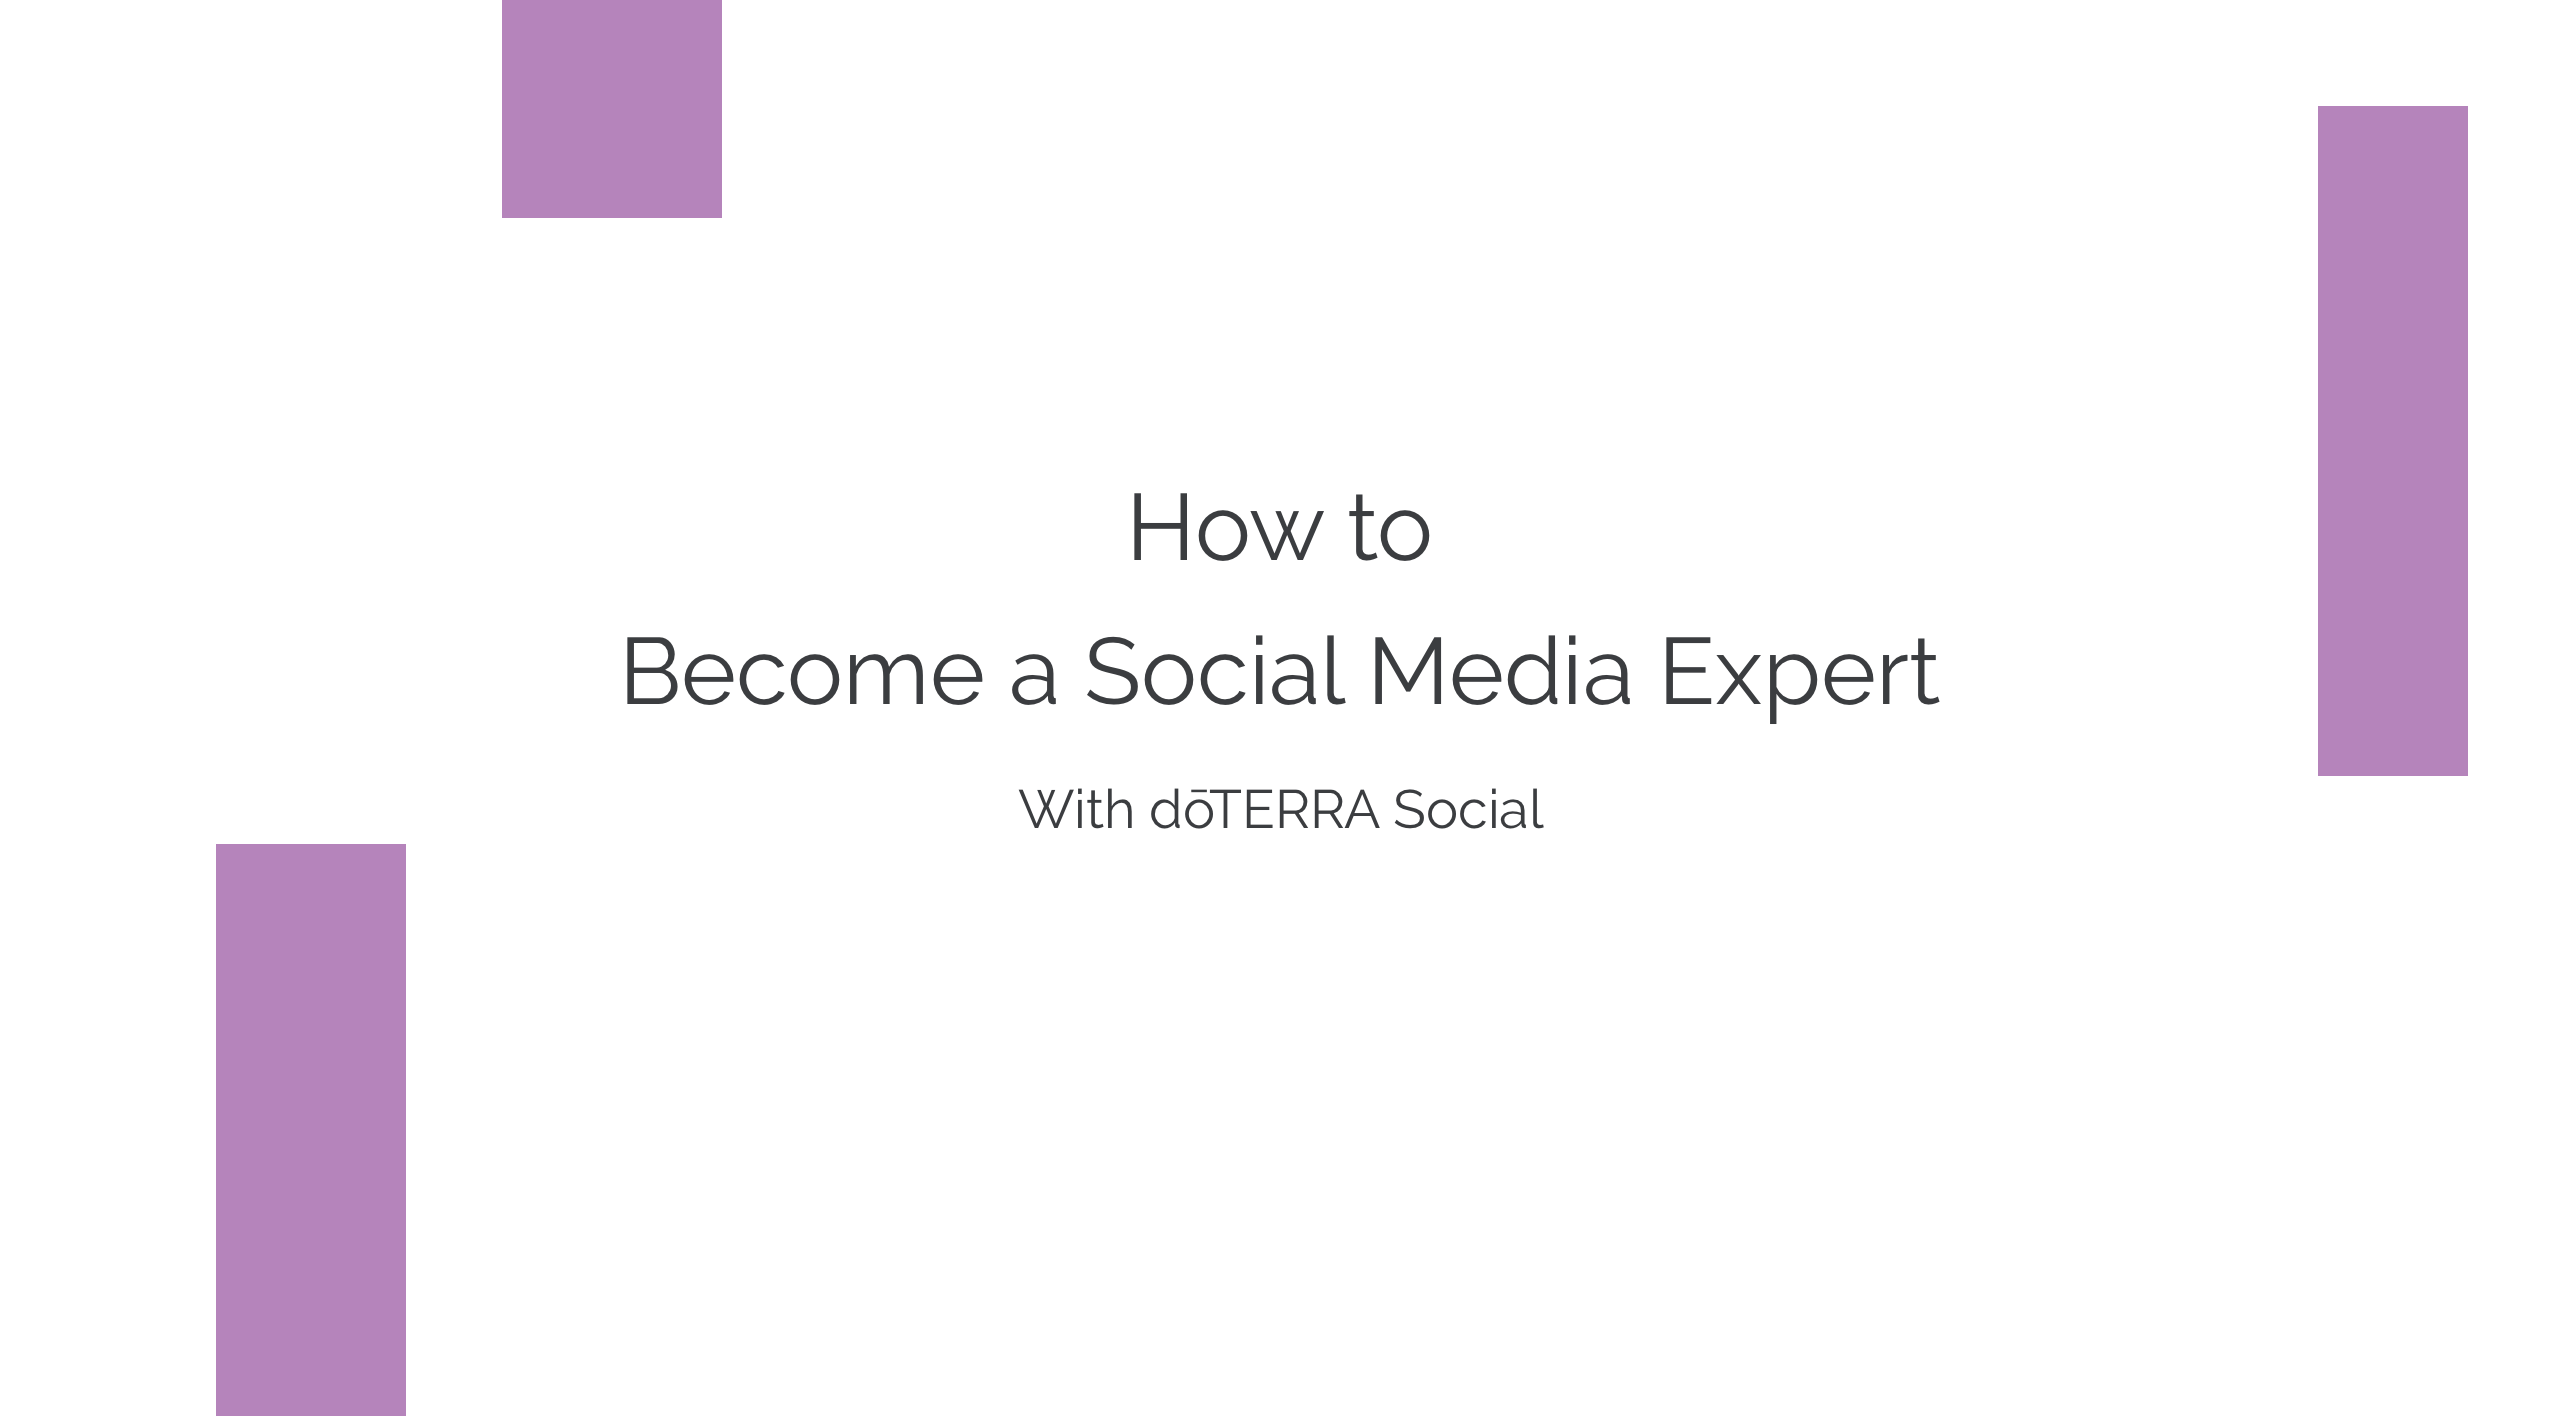 How to Become a Social Media Expert With dōTERRA Social